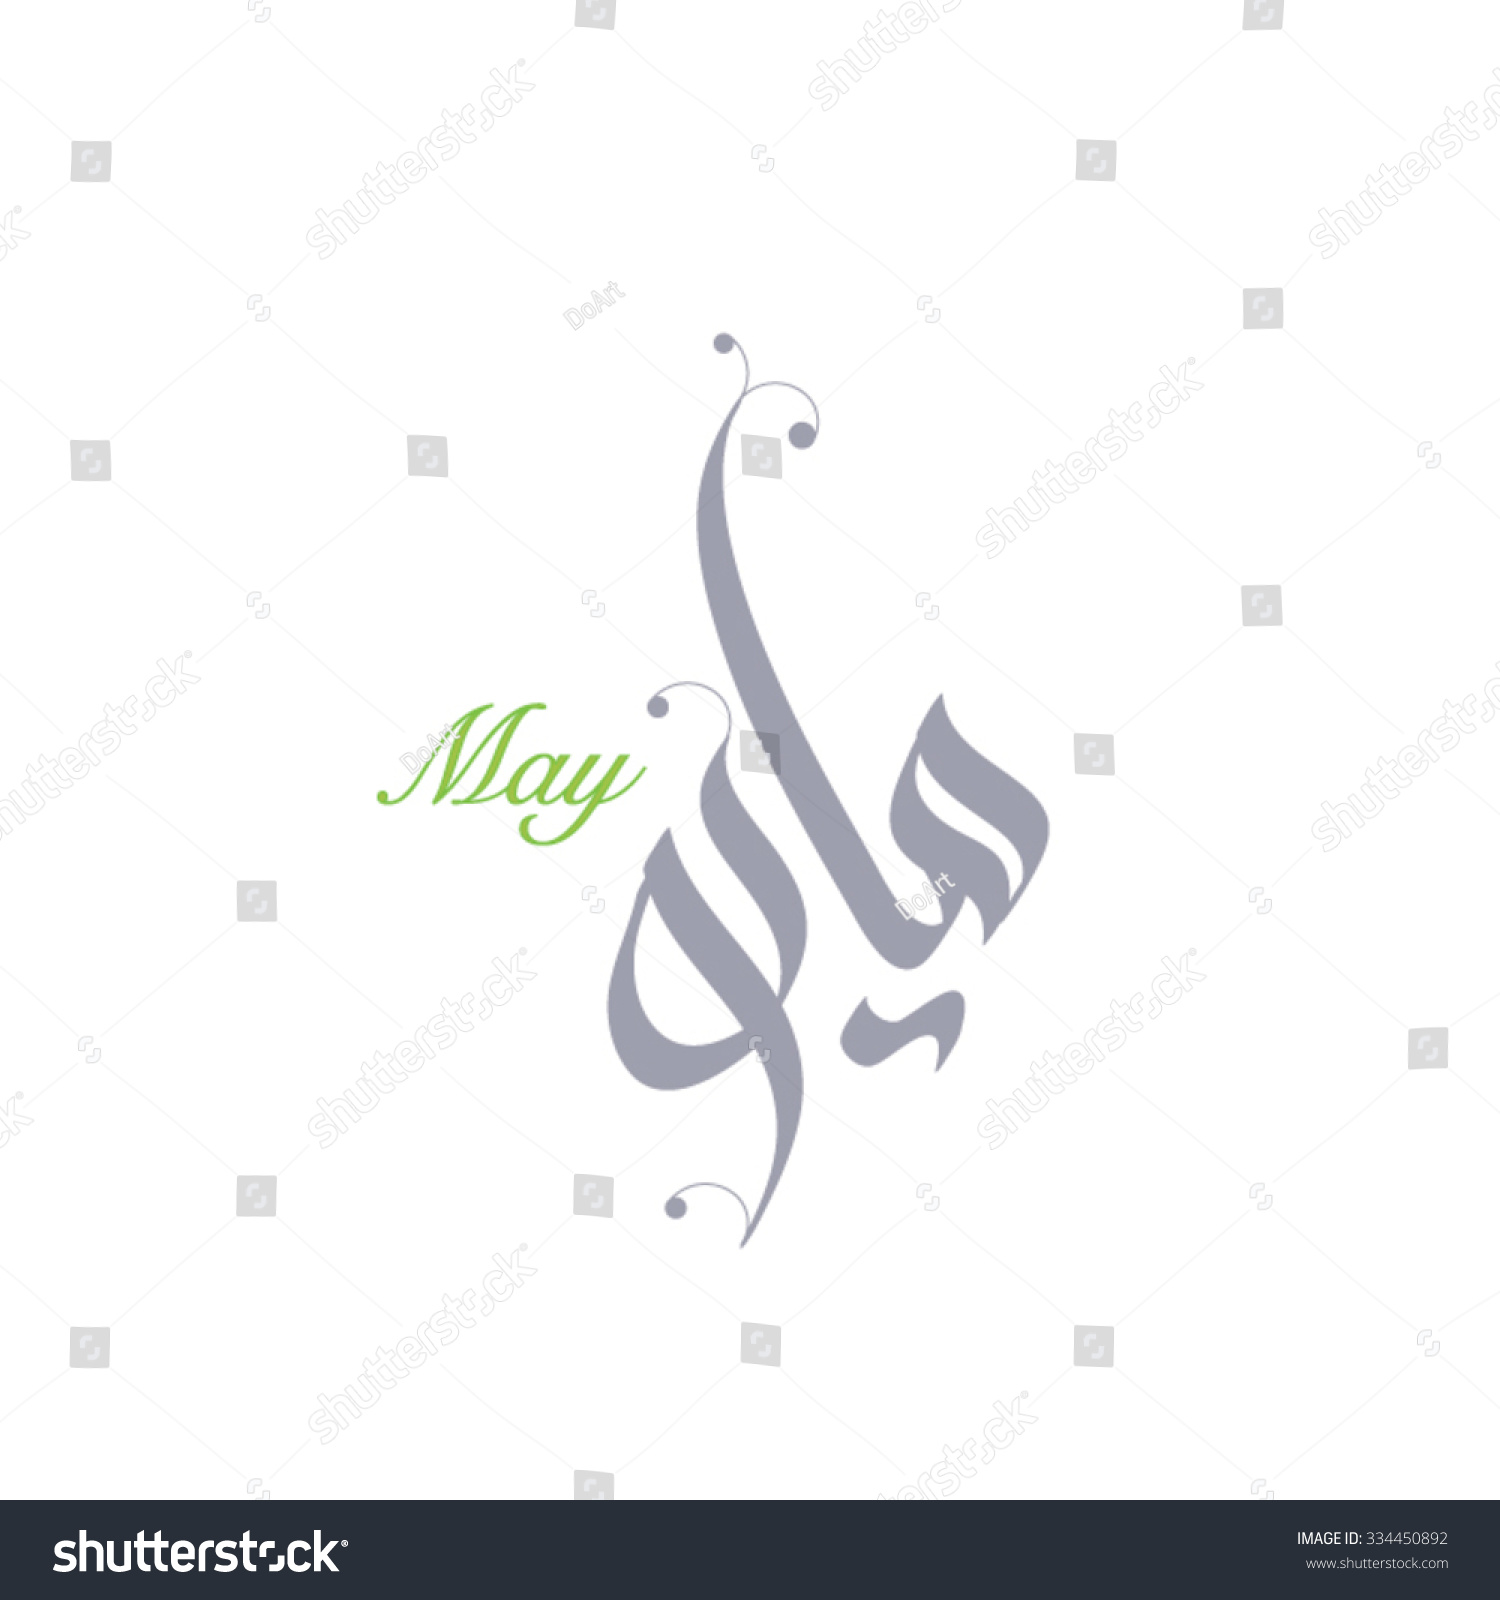 May arabic calligraphy style vector type stock